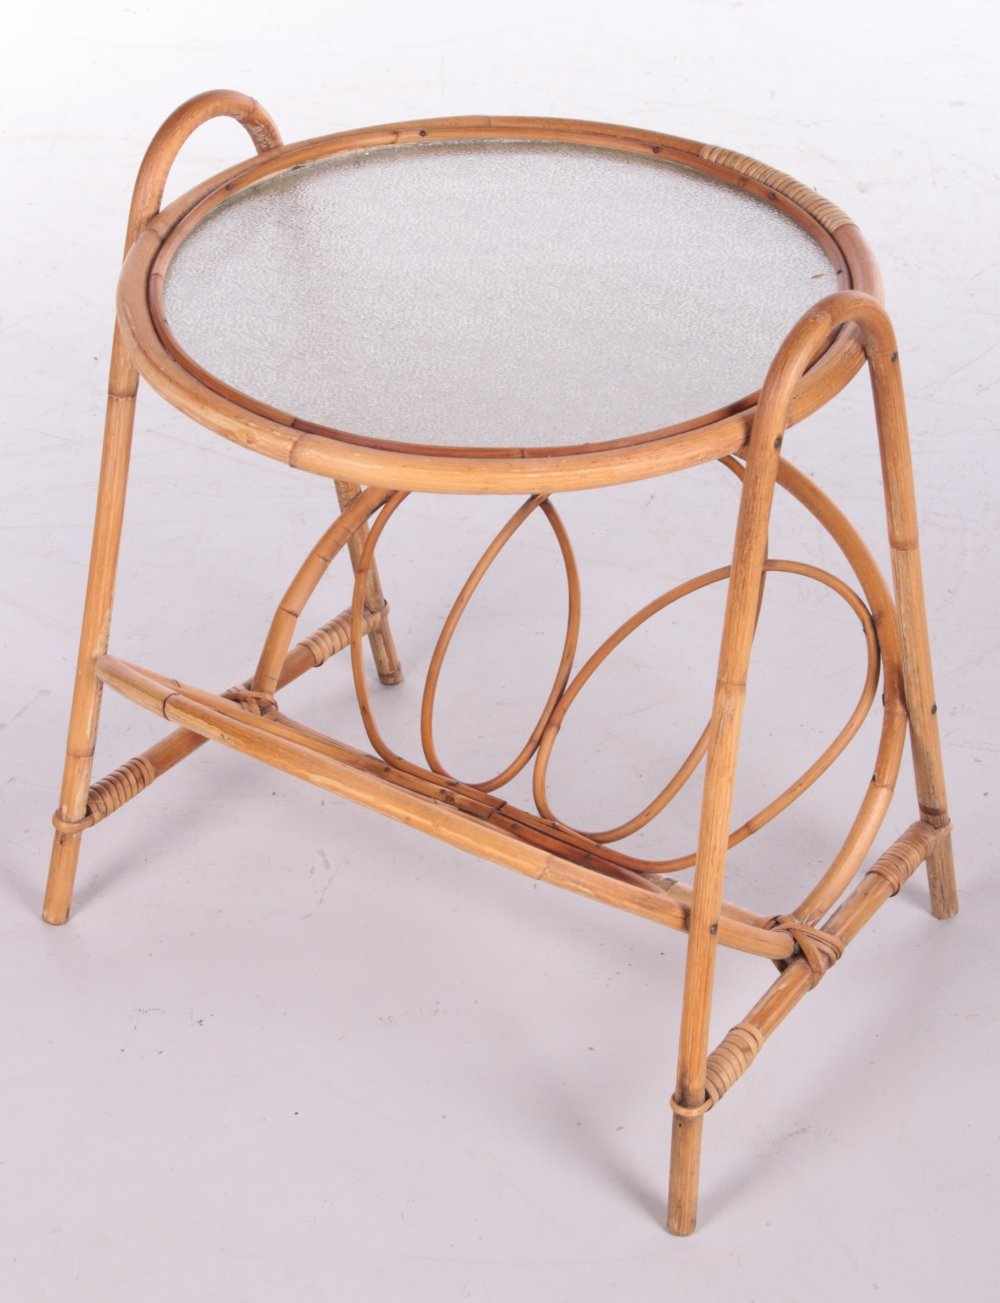 Round Bamboo side table with storage racks, Denmark 1960s